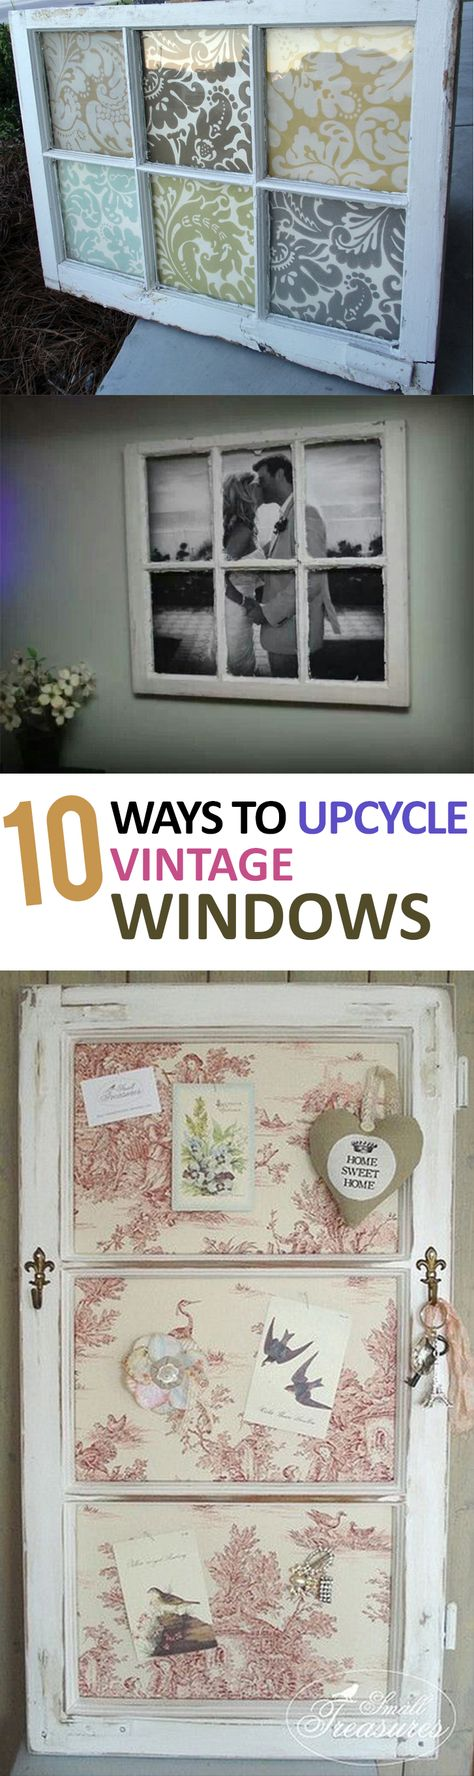 10 Ways to Upcycle Vintage Windows - Sunlit Spaces | DIY Home Decor, Holiday, and More